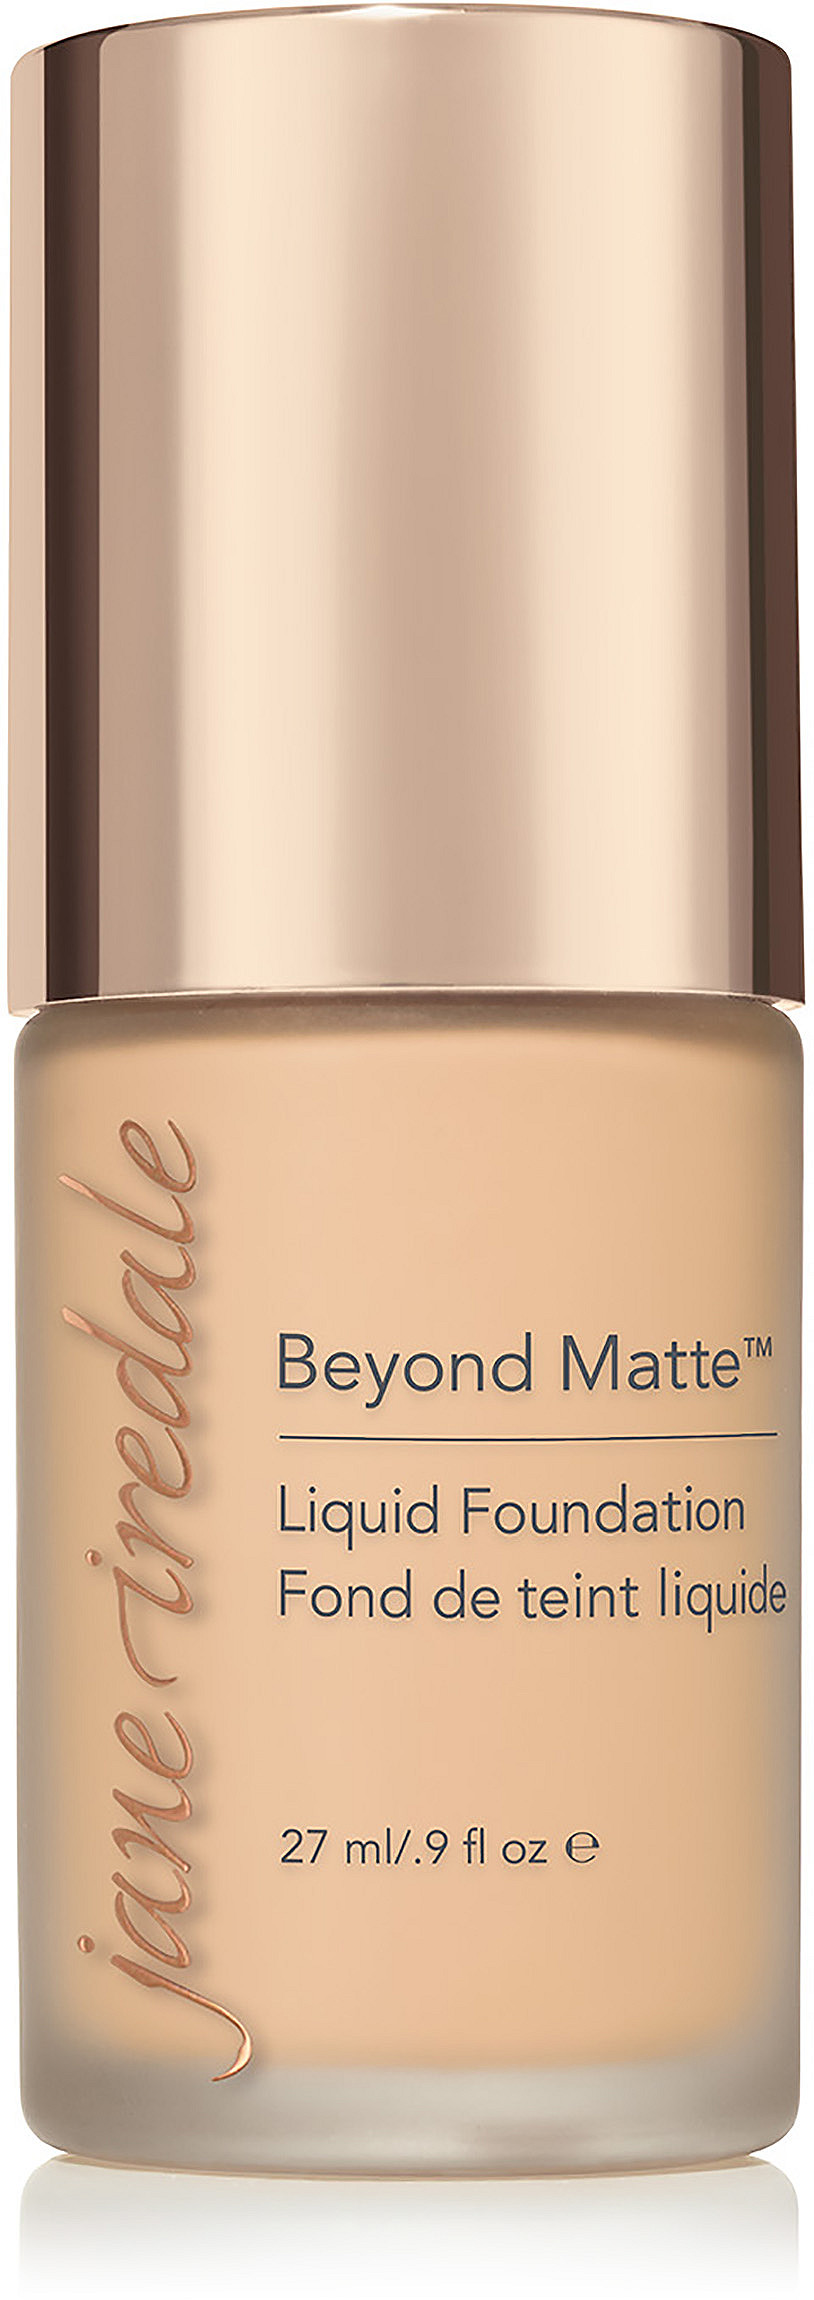 jane iredale jane iredale Online Only Beyond Matte Liquid Foundation